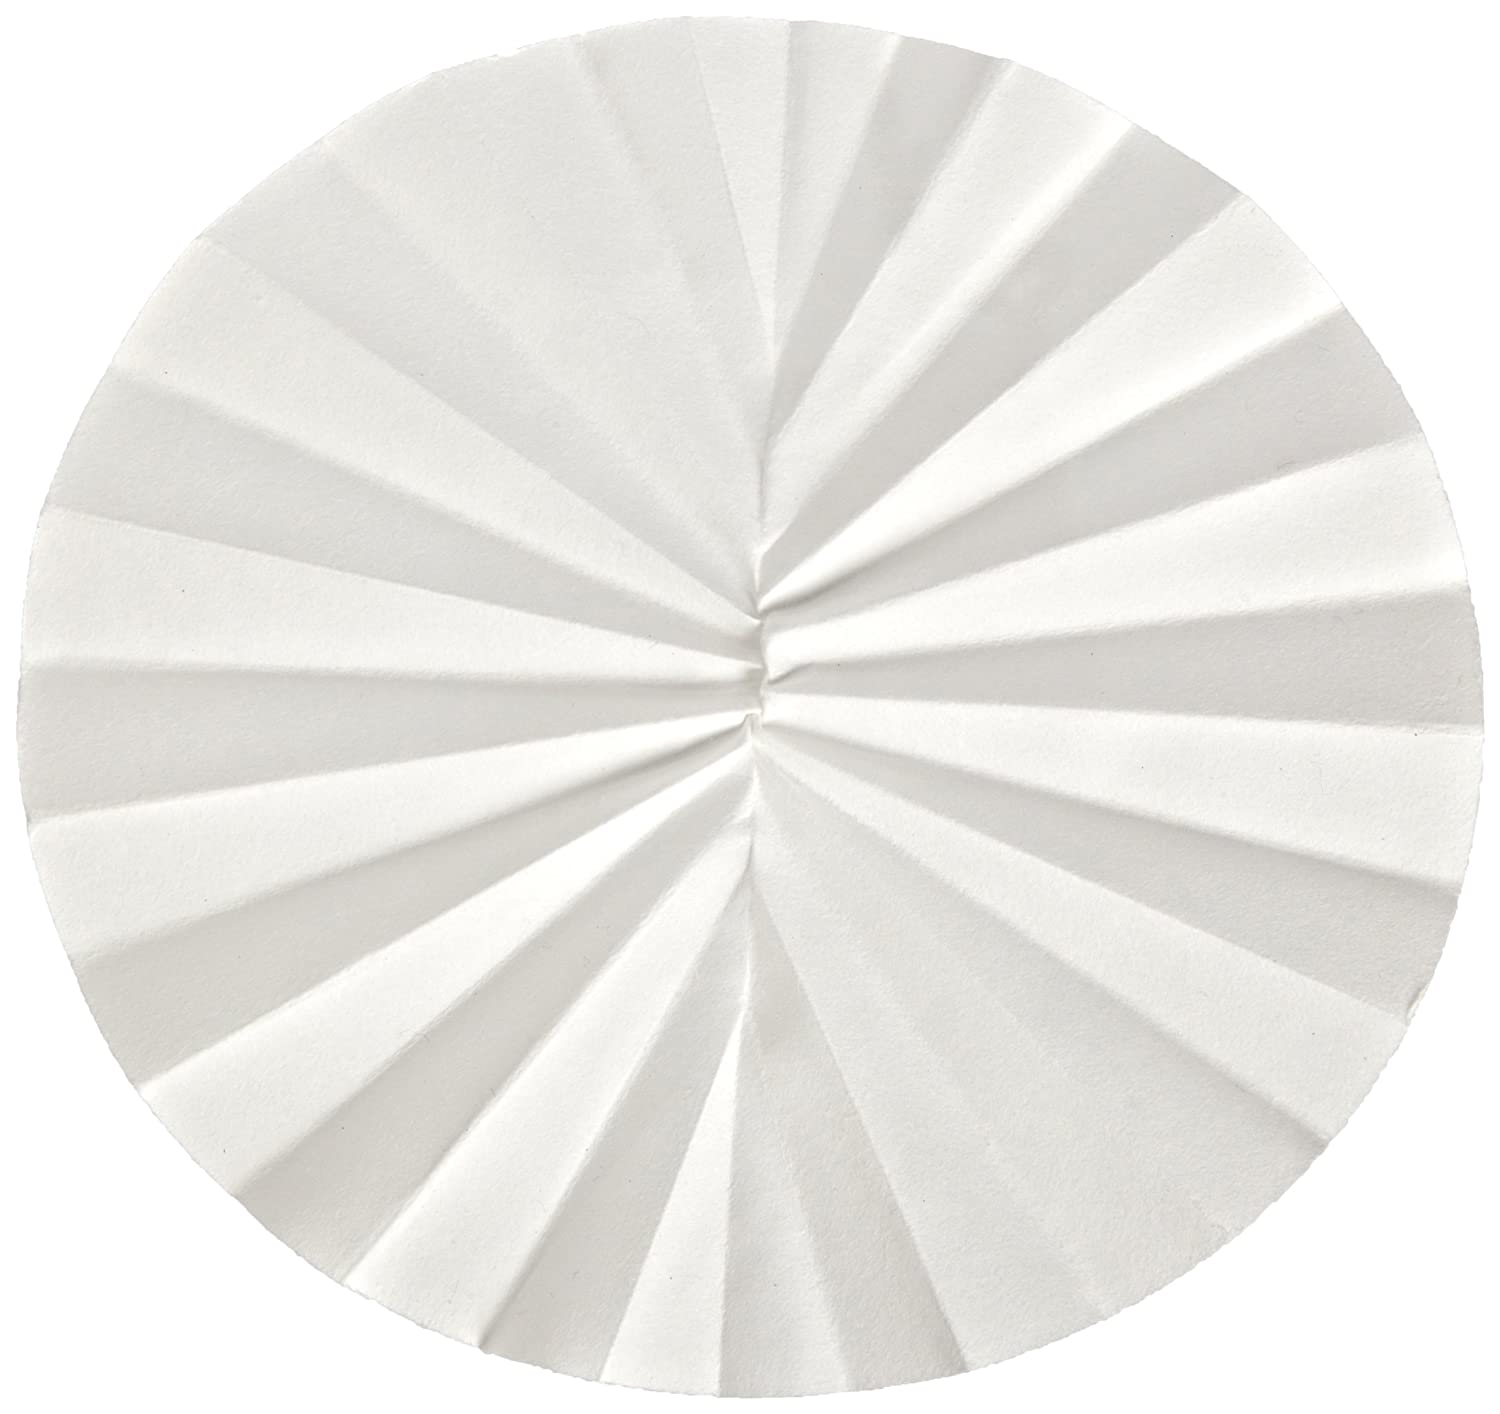 Whatman 10312256 Quantitative Folded Filter Paper WHA-10312256 Grade 598-1//2 Pack of 50 500mm Diameter 8-10 Micron